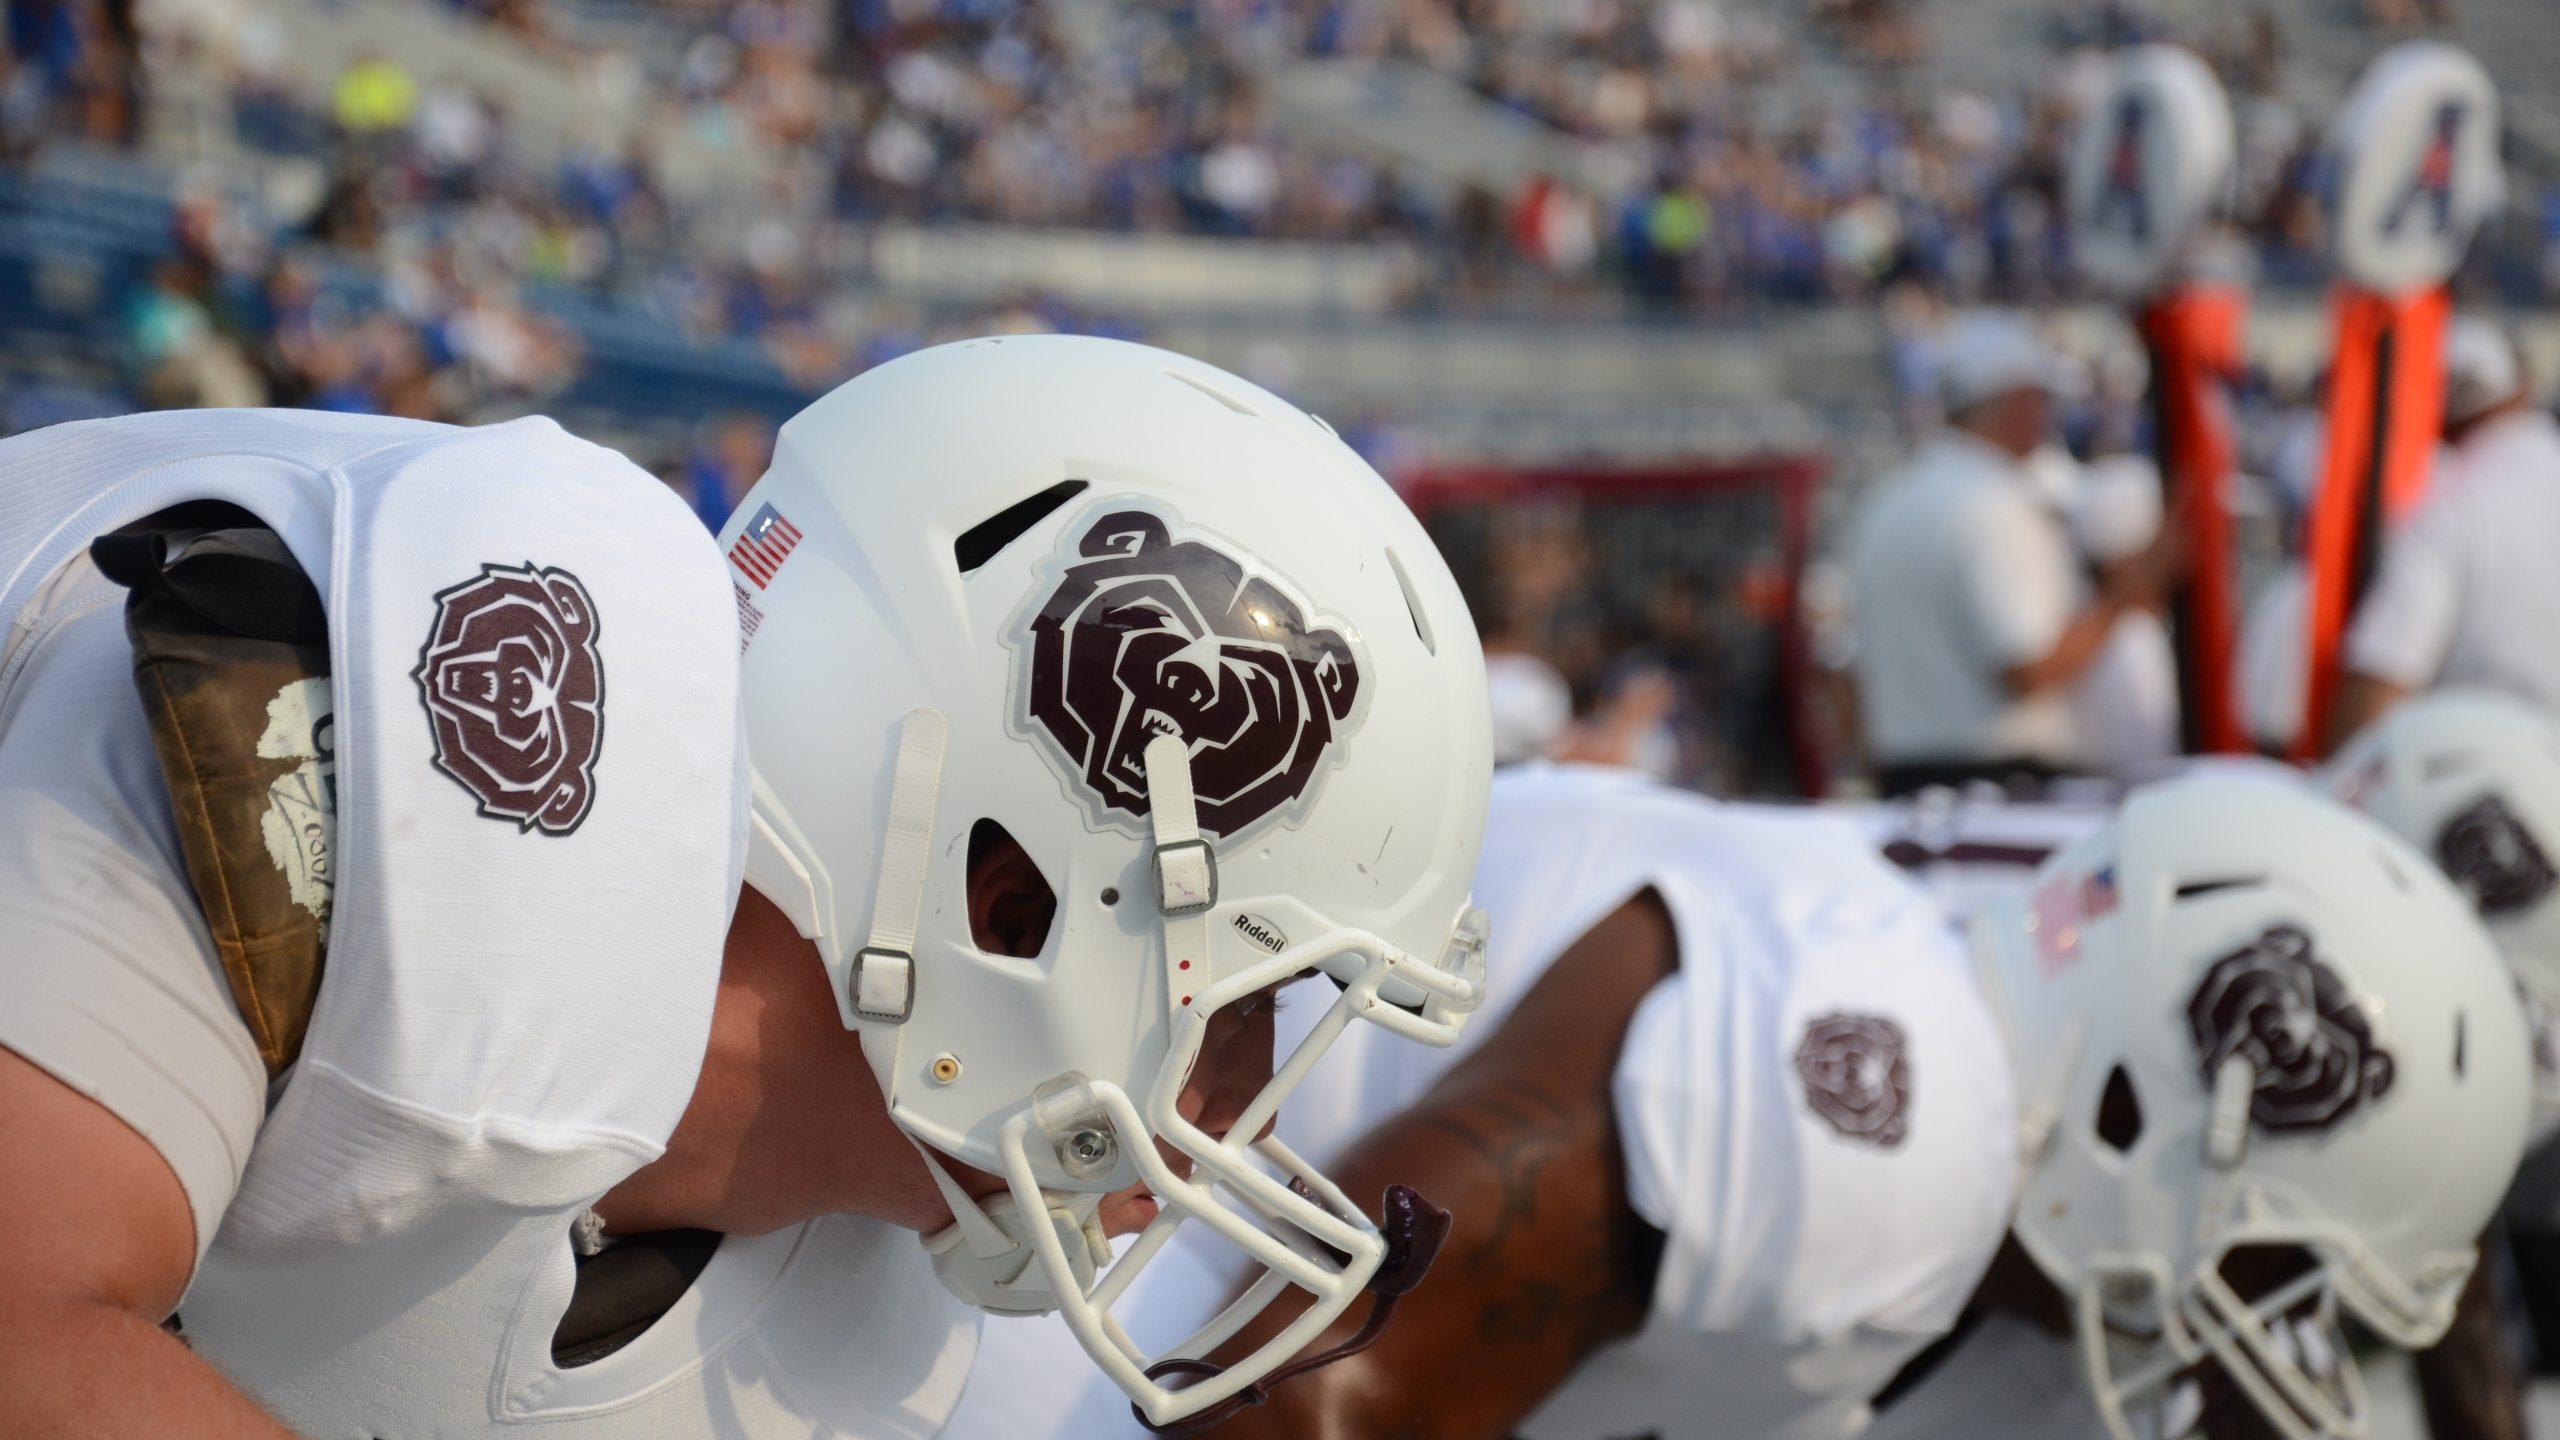 Missouri State Football Bear Helmet